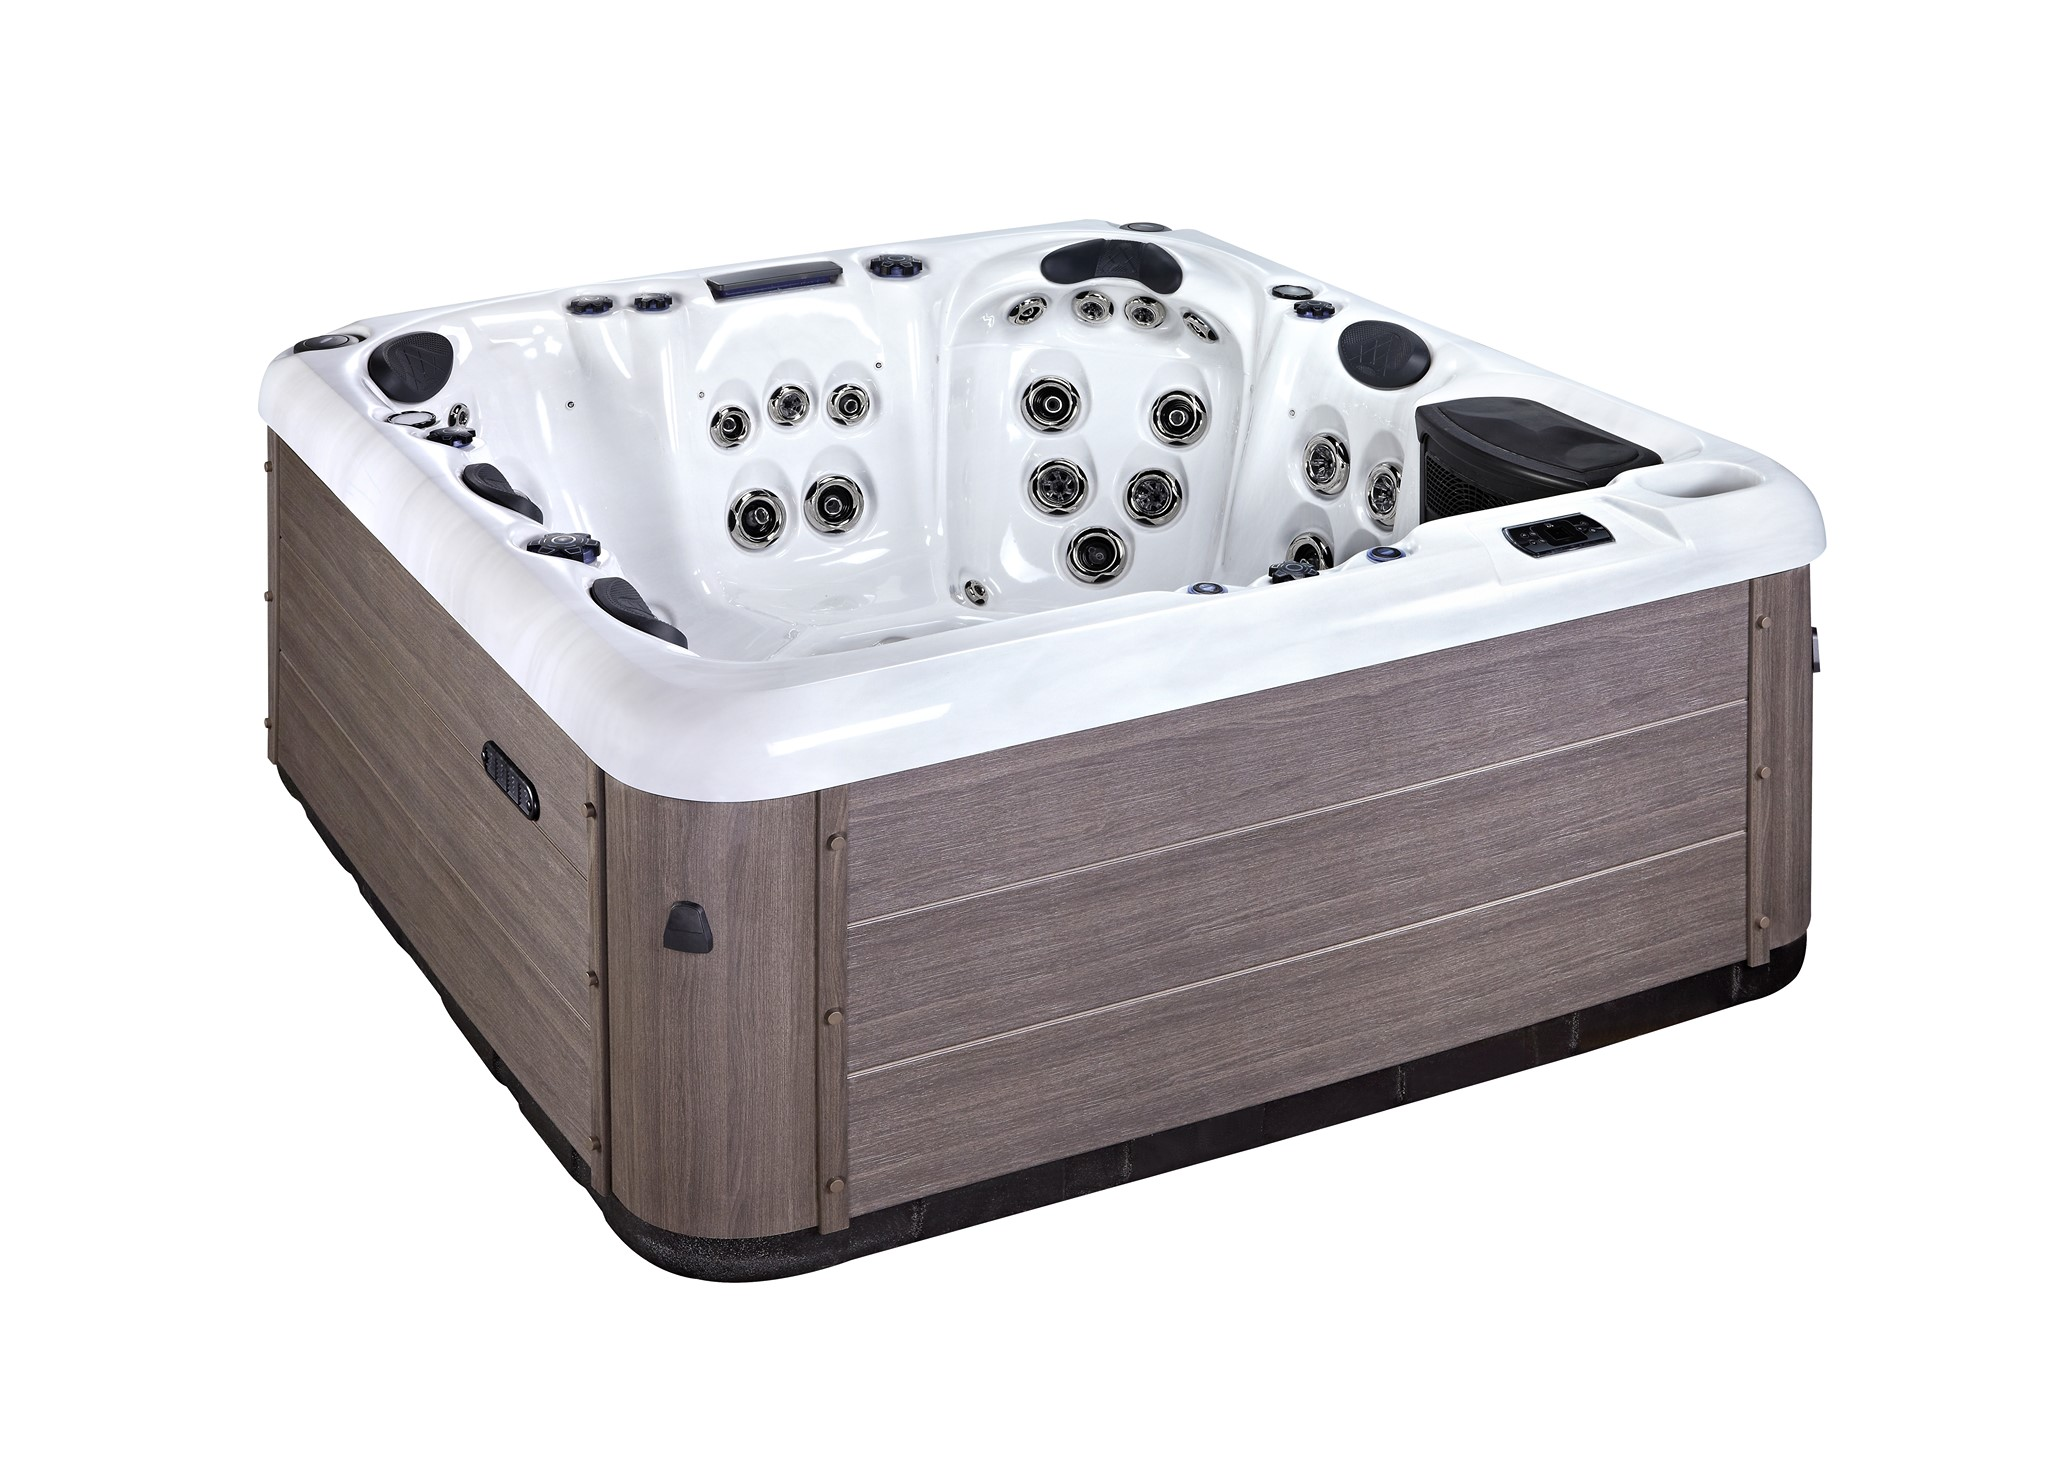 Quality, stylish design and comfort  Favells Caesar spa is perfect for 6 people, and includes 56 jets, water features and LED lights. Using 2 x 3 HP pumps the jet pressure is very powerful and therefore the hydrotherapy is exceptional.  » Spas, Swim Spas & Accessories Fuengirola, Costa Del Sol, Spain